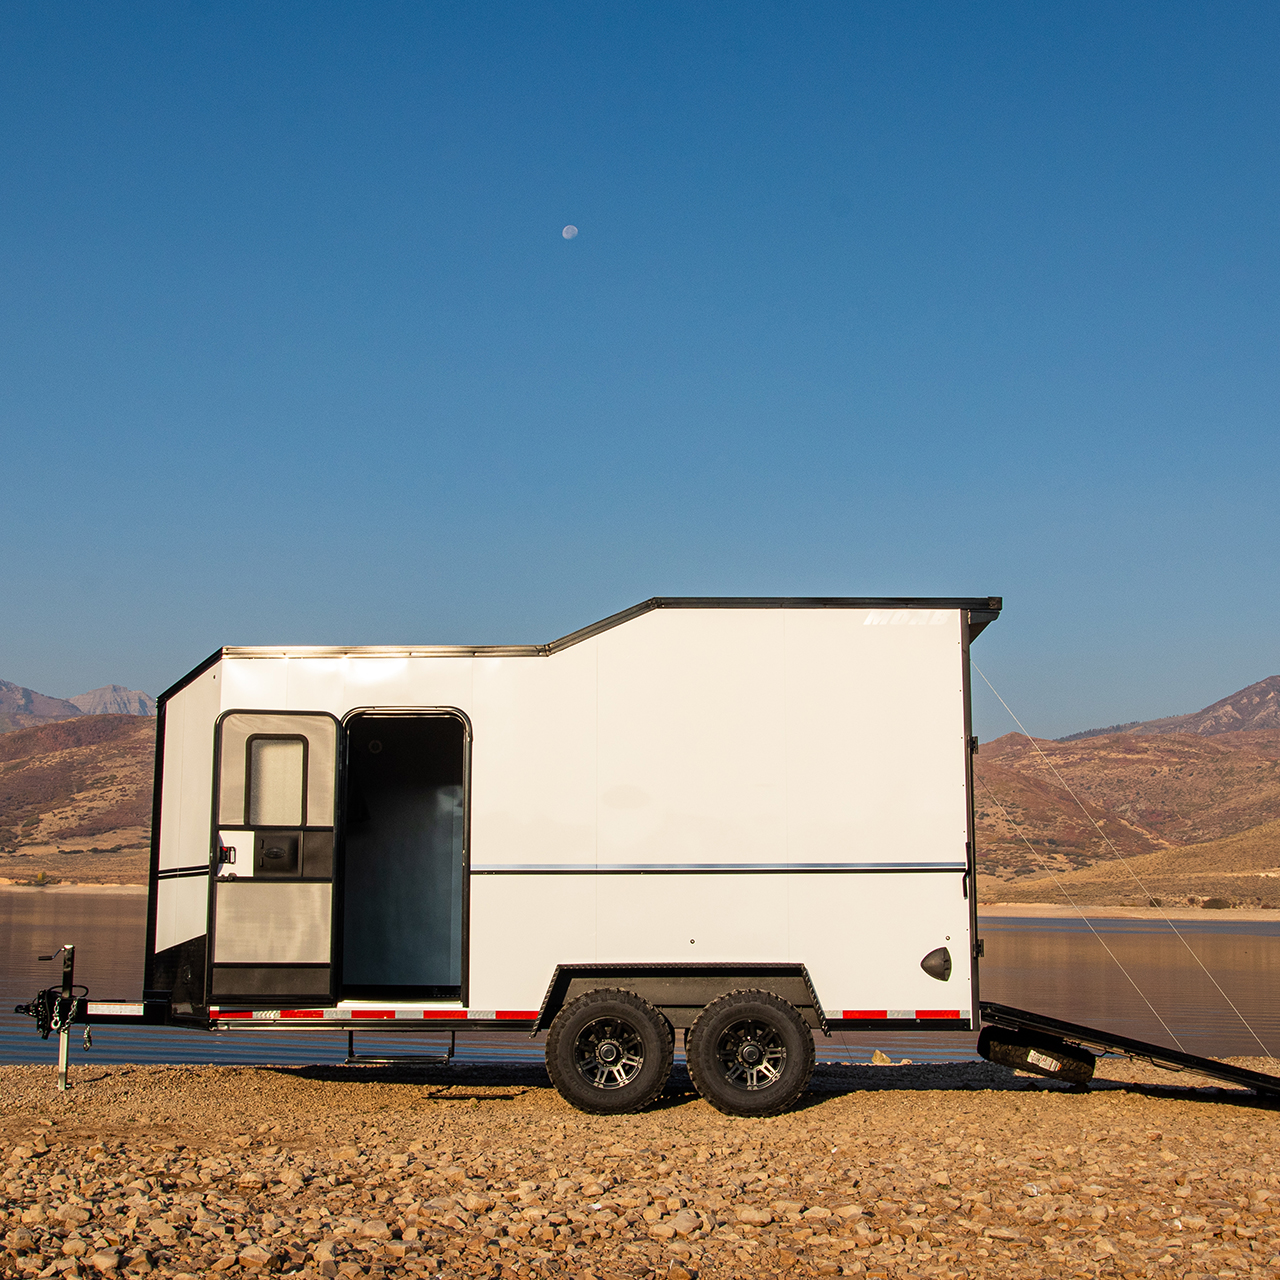 Moab - Camping Trailer - Off grid - White - Mobile Camping - Cargo Trailer - LOOK Trailers